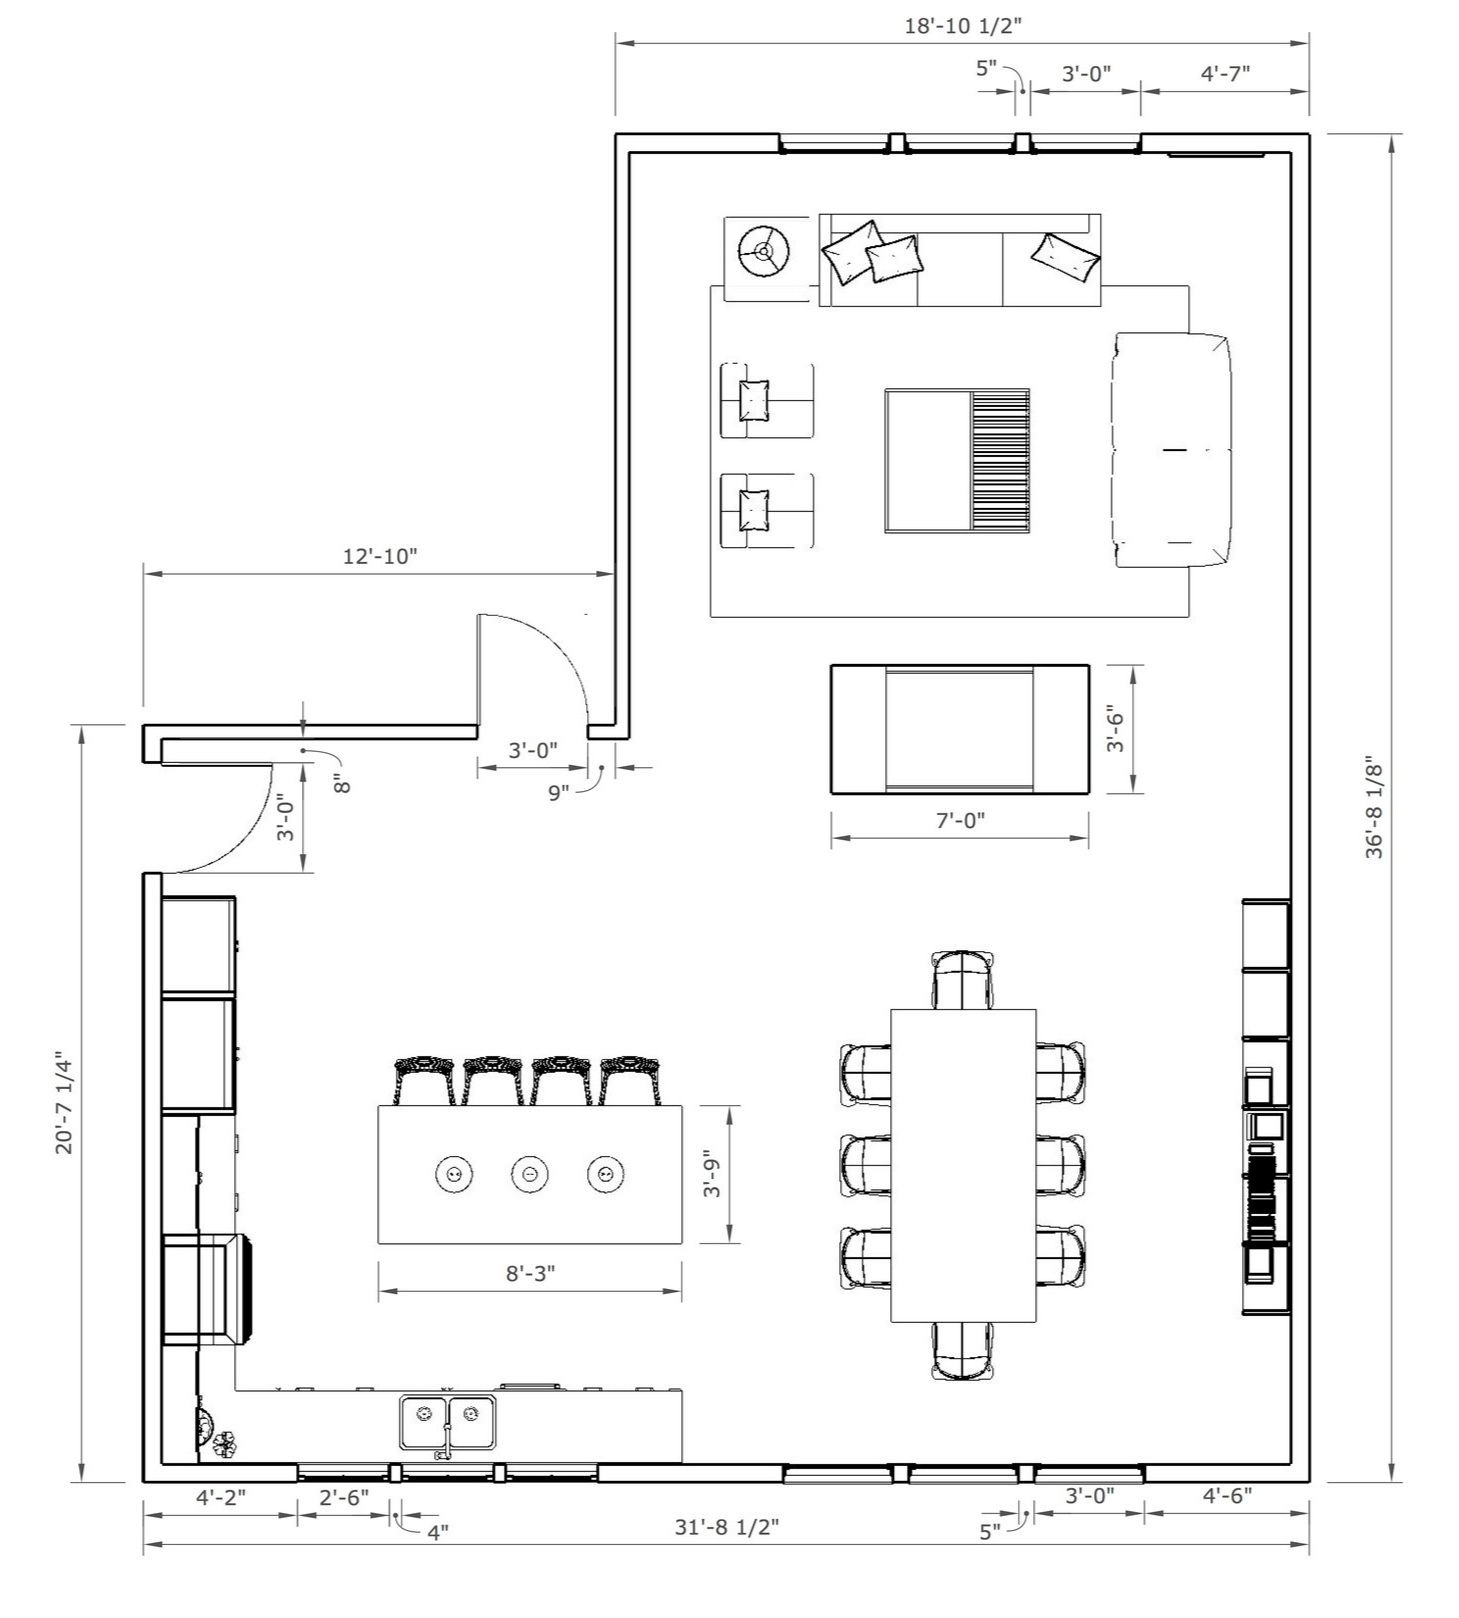 2D Floor Plans - Although SketchUp is primarily a 3D modeling tool, starting with a 2D floor plan is part of nearly every interior designers workflow. SketchUp gives you the flexibility to think conceptually and the precision to design accurately.Ready to start drawing organized floor plans but need some help? Start here.